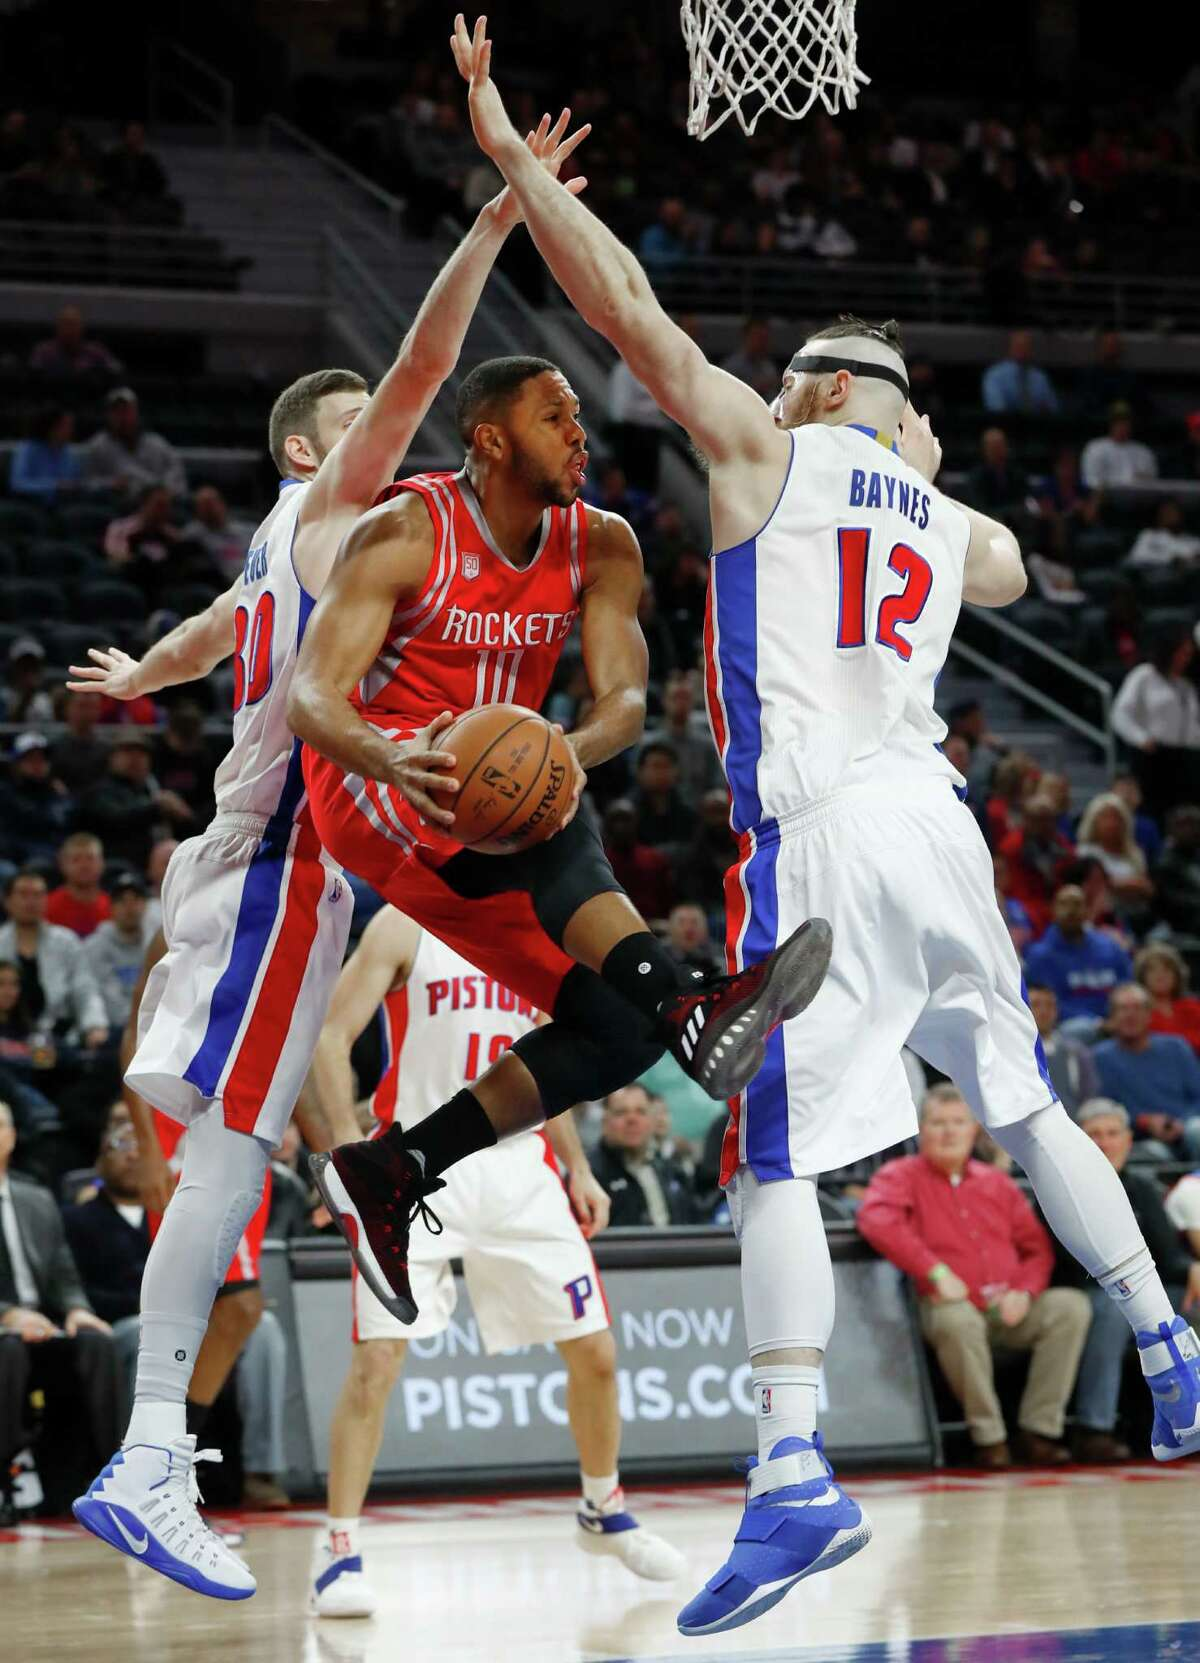 Eric Gordon, who was held scoreless on five field-goal attempts, tries to split a pair of Pistons.